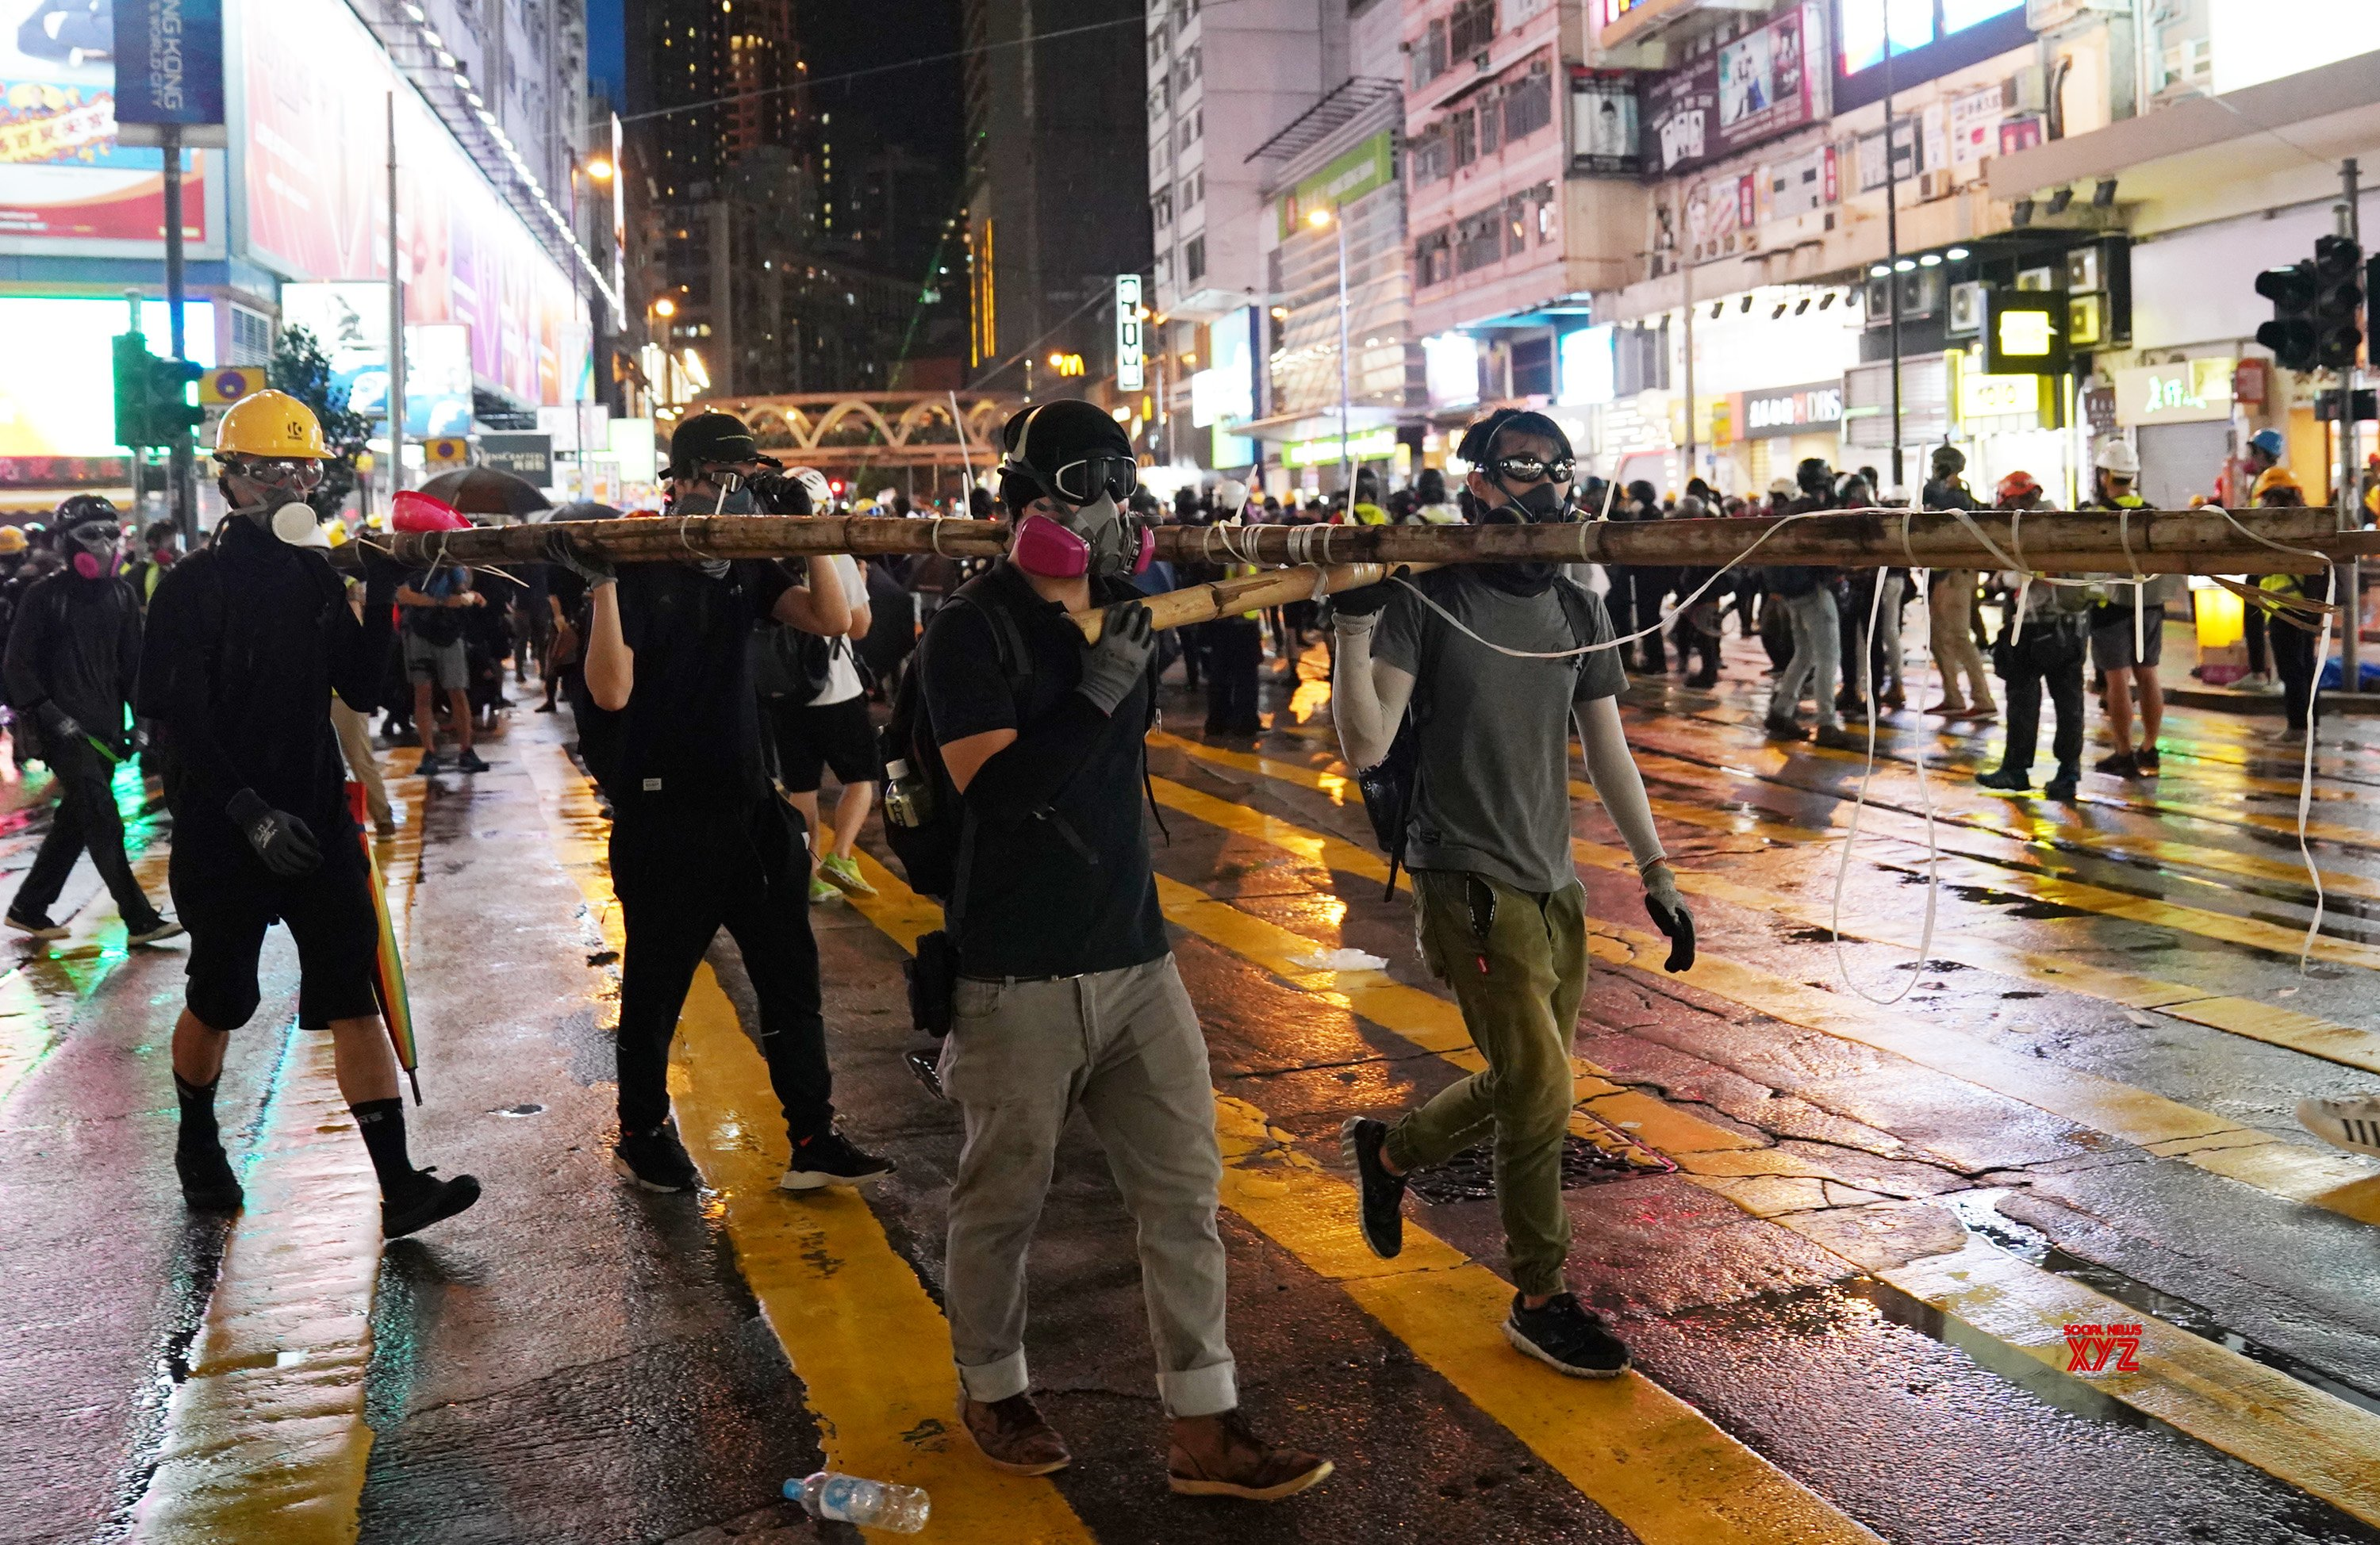 HK oppn to defy police ban on annual pro-democracy rally